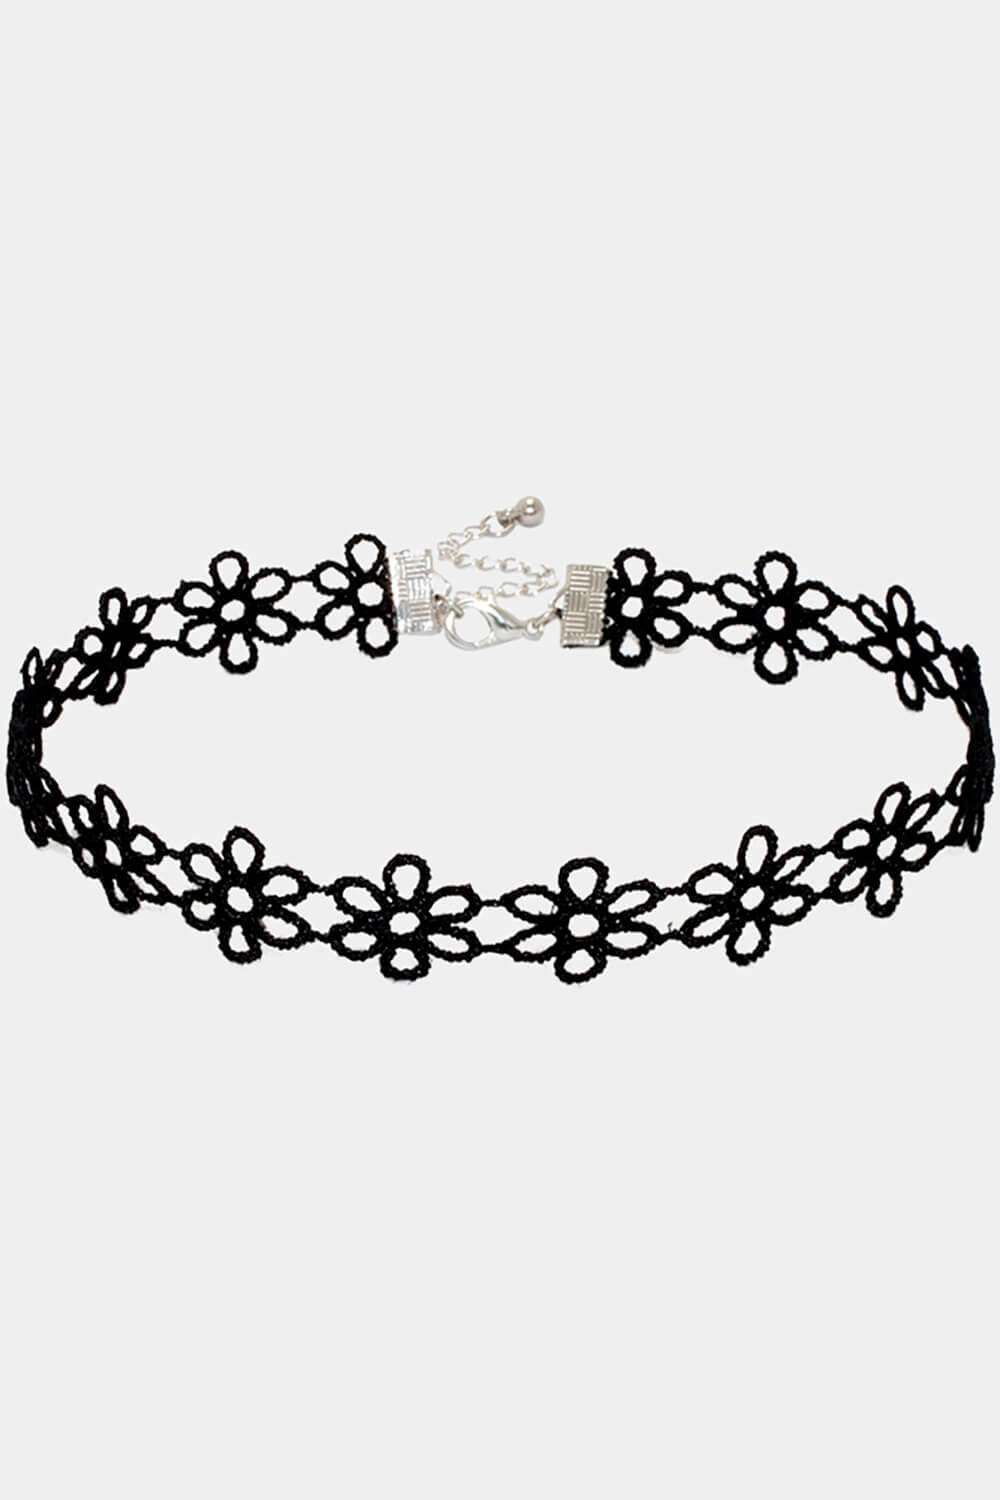 Laced Flowers Choker Collar Necklace Black and White 0 Pinterest - Orezoria Aesthetic Clothing Shop